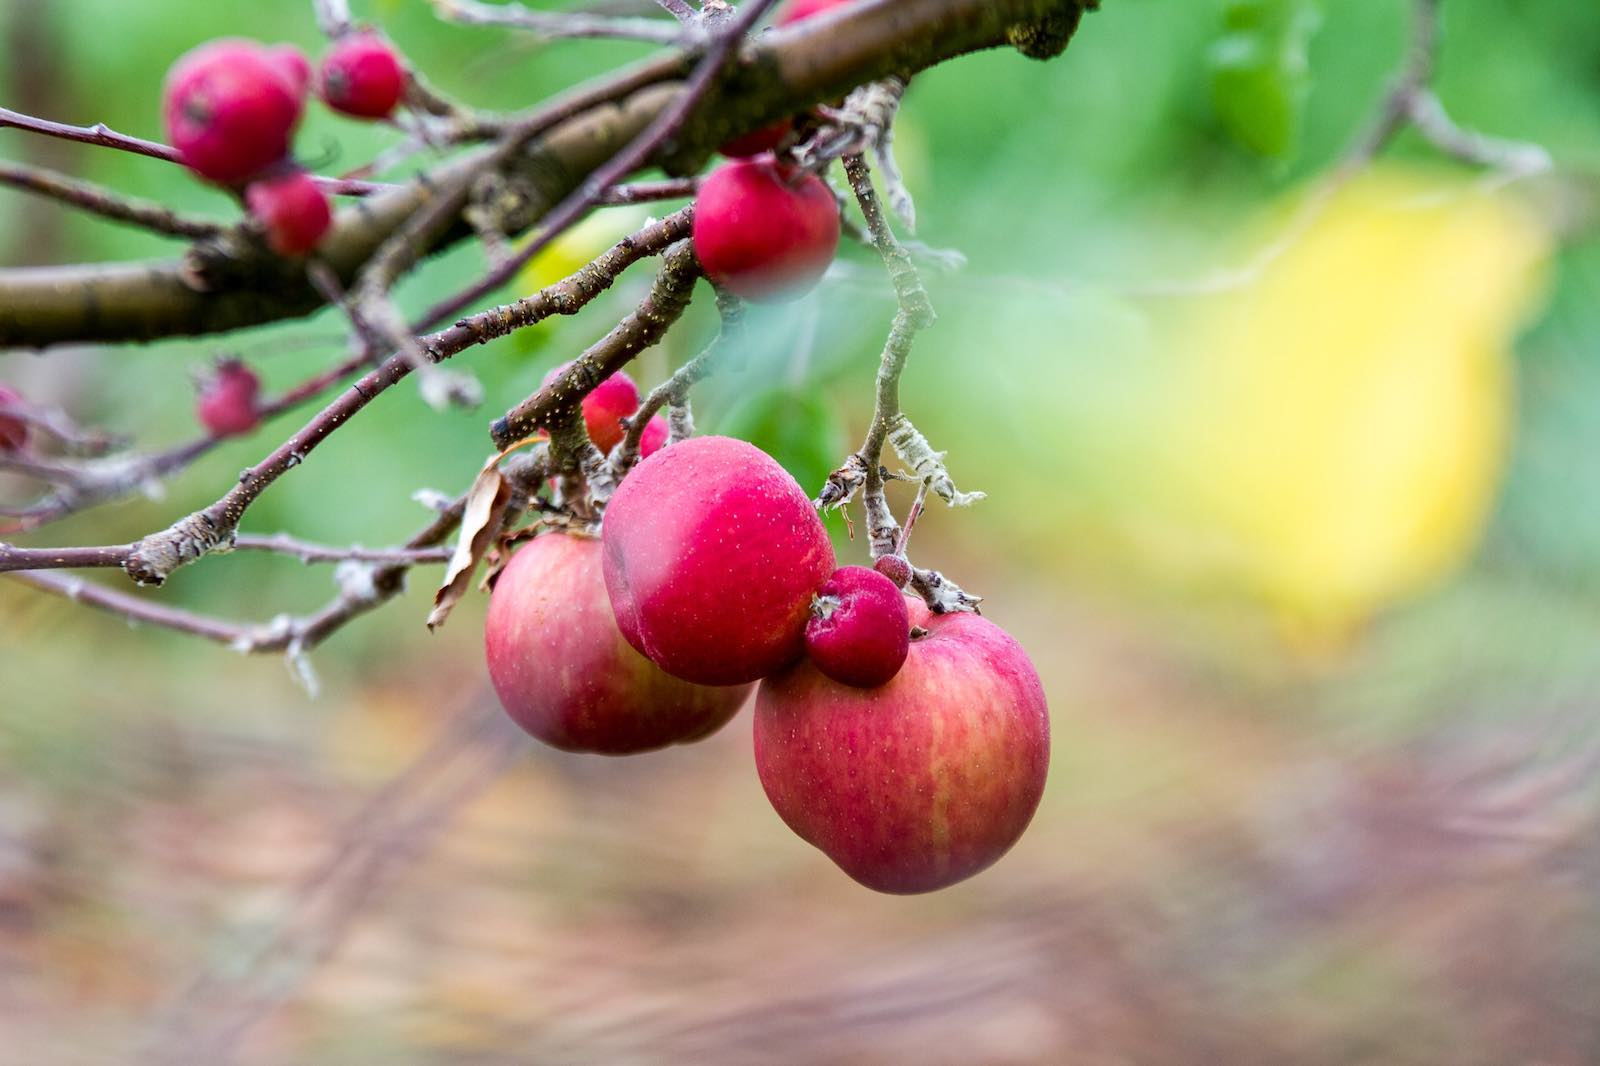 Apples in the Huon valley, Tasmania, where fruit picking would change Maria's life (Photo: TassieEye/Flickr)